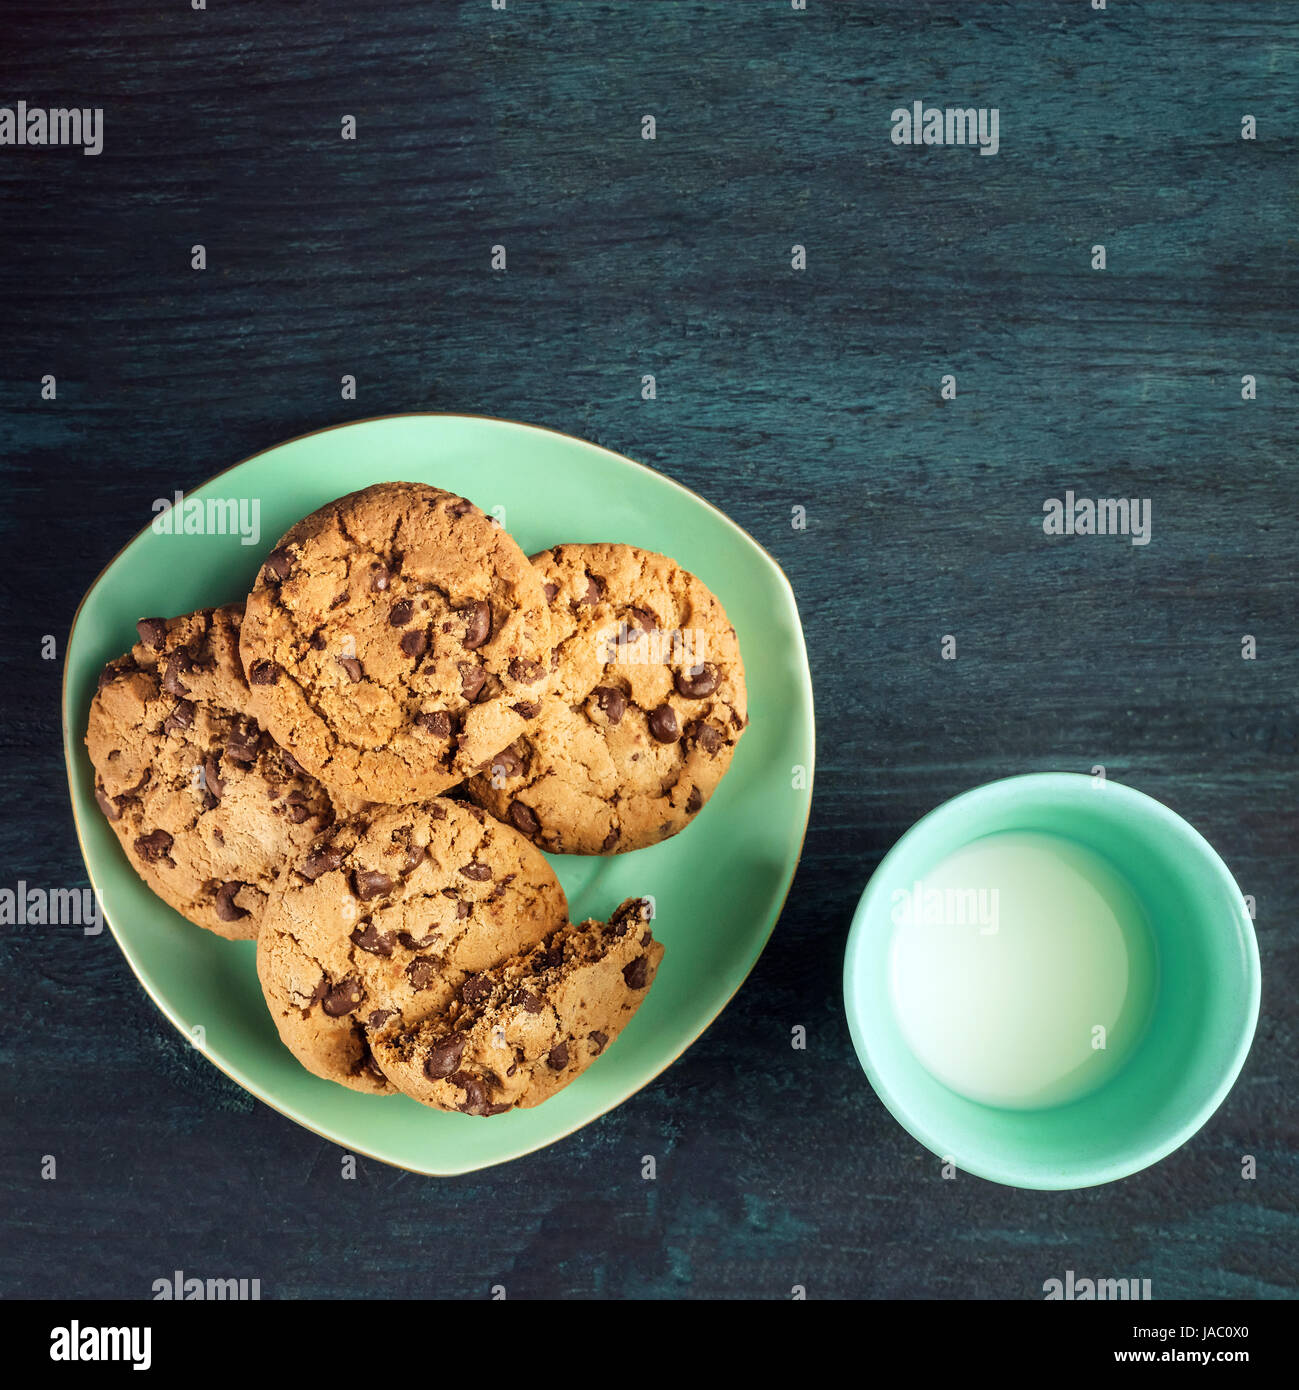 Chocolate chips cookies with glass of milk, shot from above - Stock Image